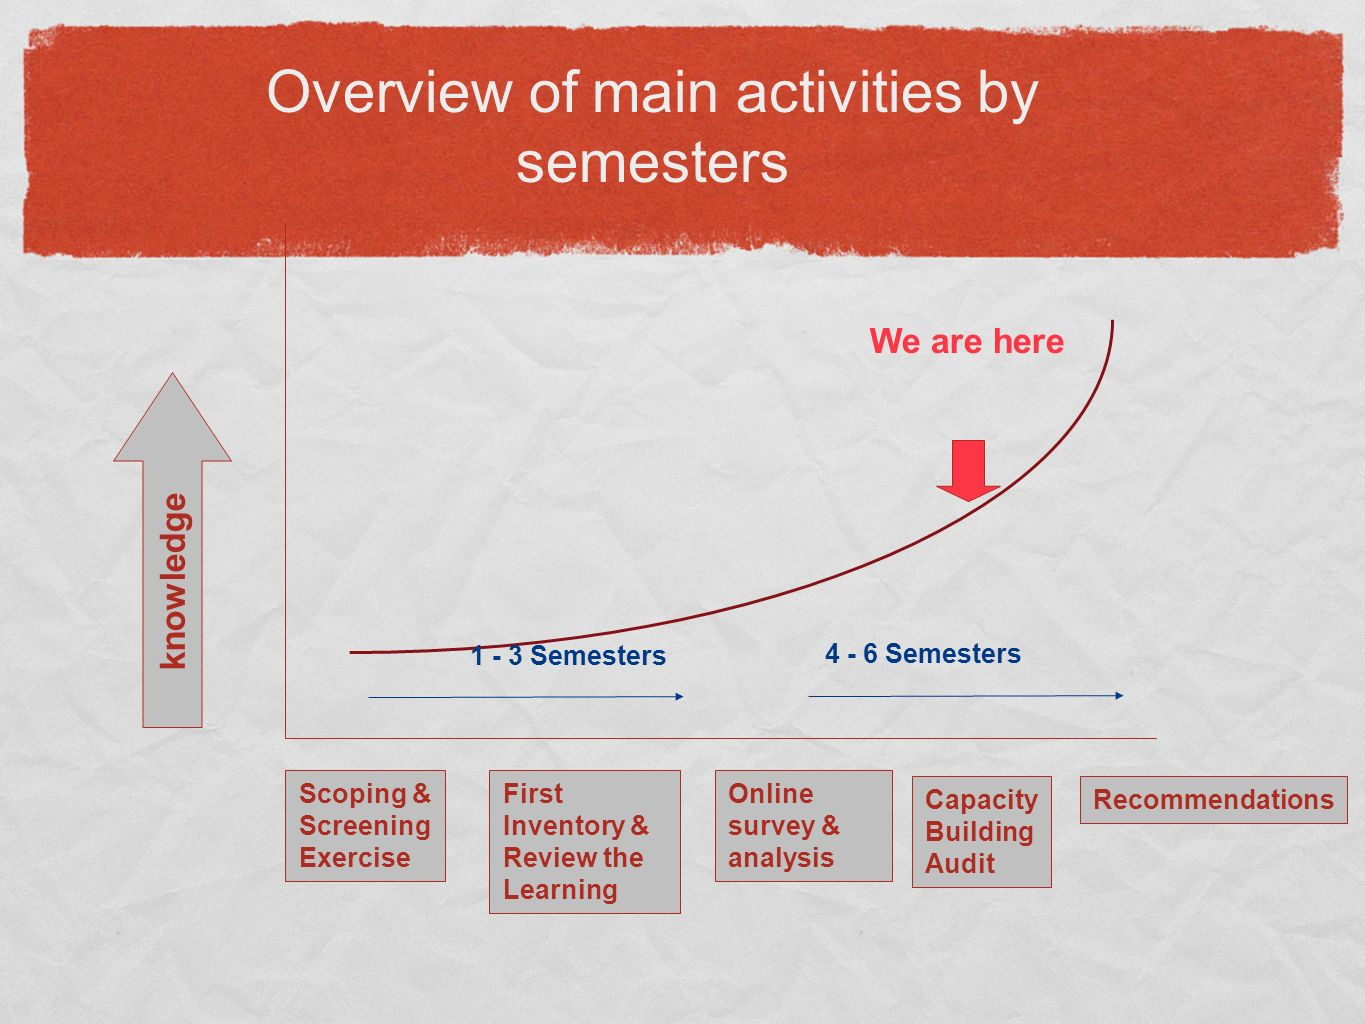 Overview of main activities by semesters Scoping & Screening Exercise First Inventory & Review the Learning Online survey & analysis Recommendations We are here knowledge 4 - 6 Semesters 1 - 3 Semesters Capacity Building Audit